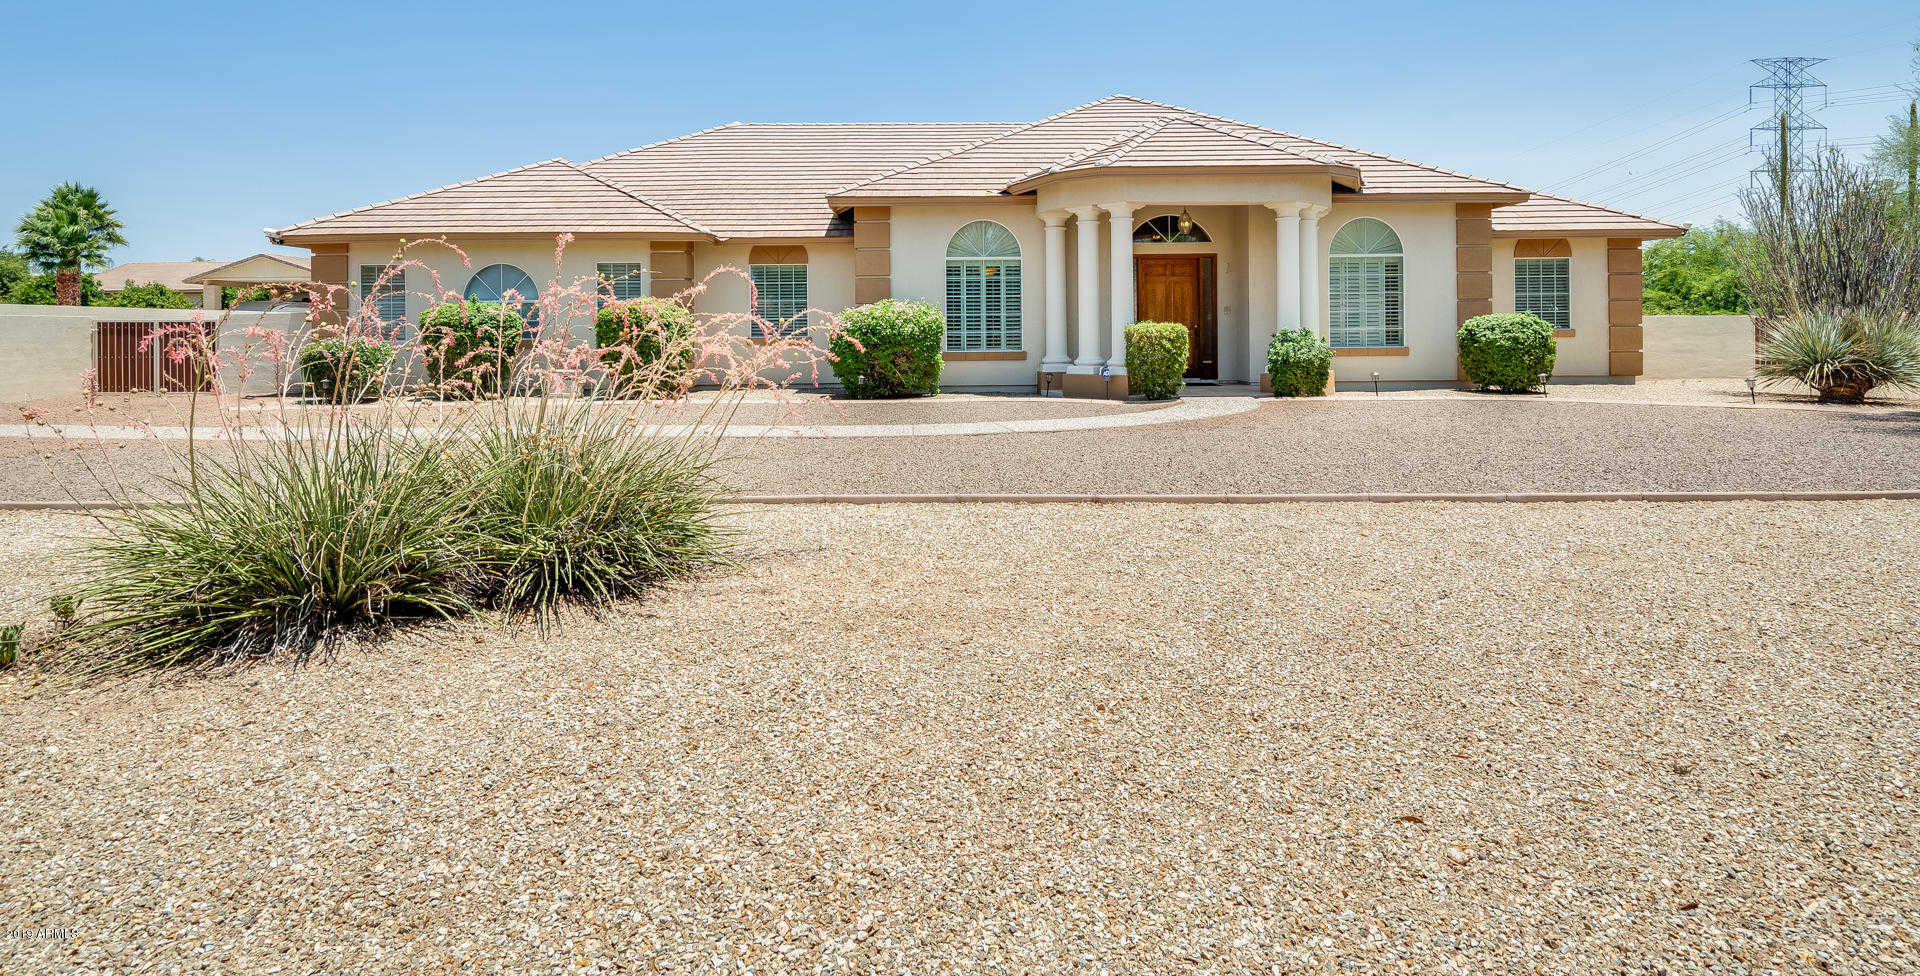 $750,000 - 4Br/5Ba - Home for Sale in Unknown, Glendale